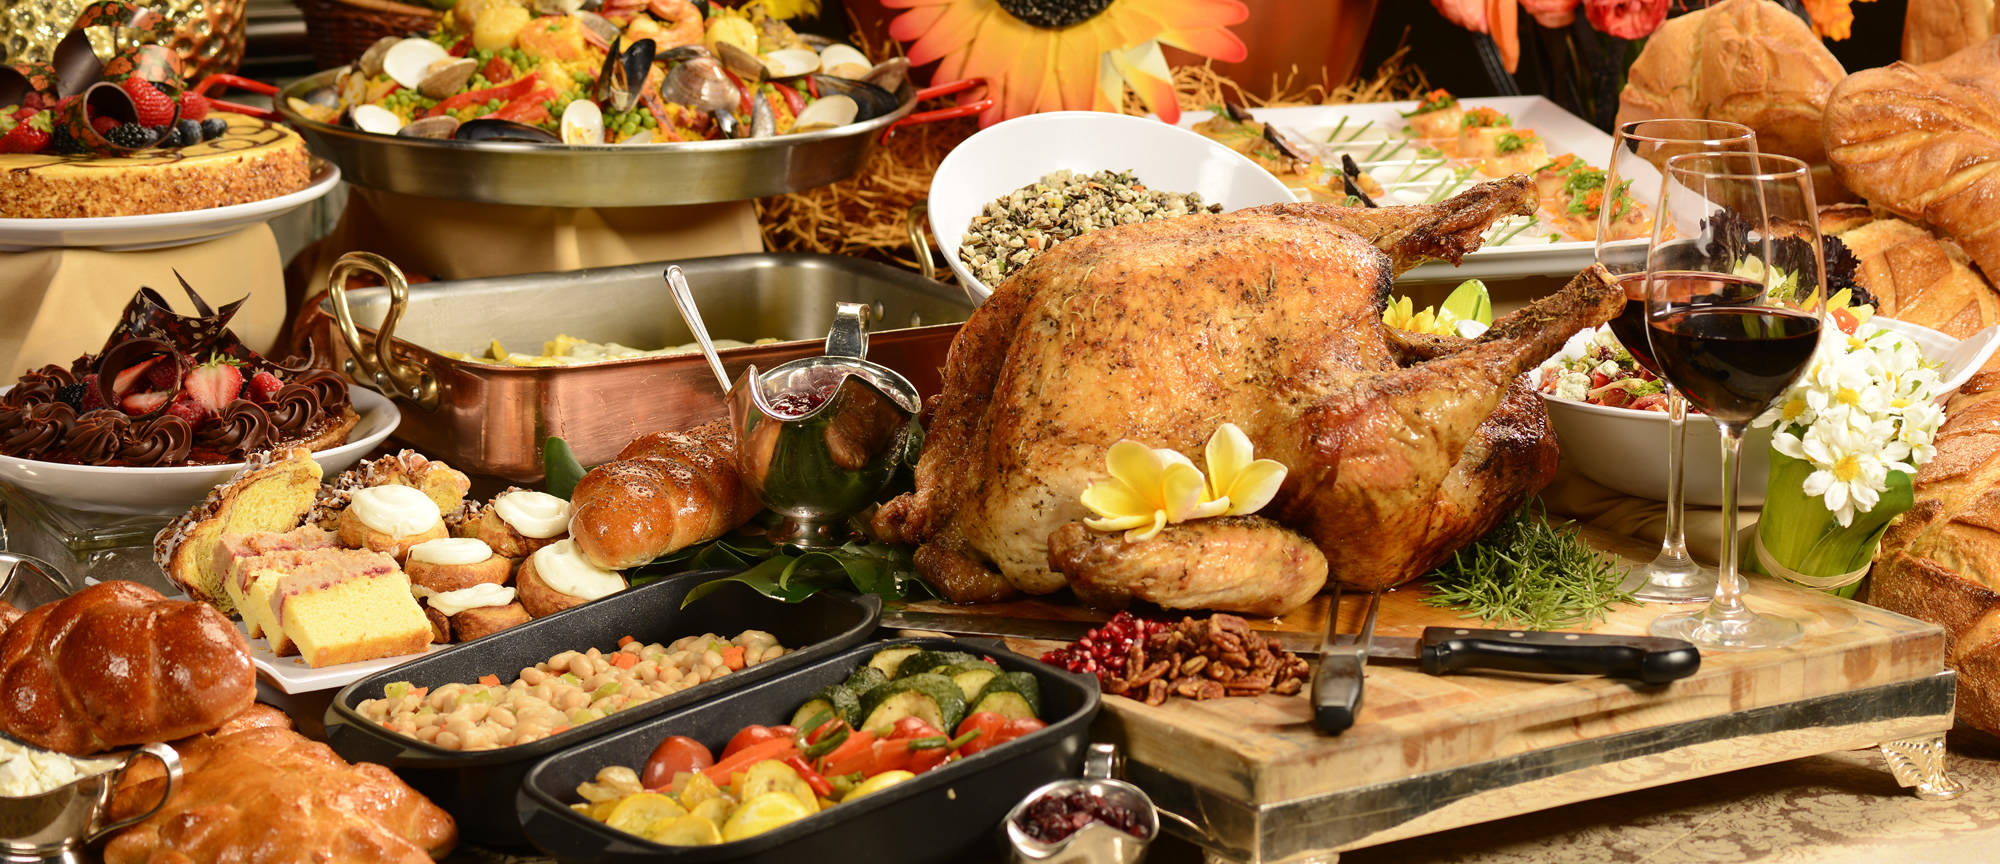 No Turkey No Problem – Where to Dine this Thanksgiving in San Diego!